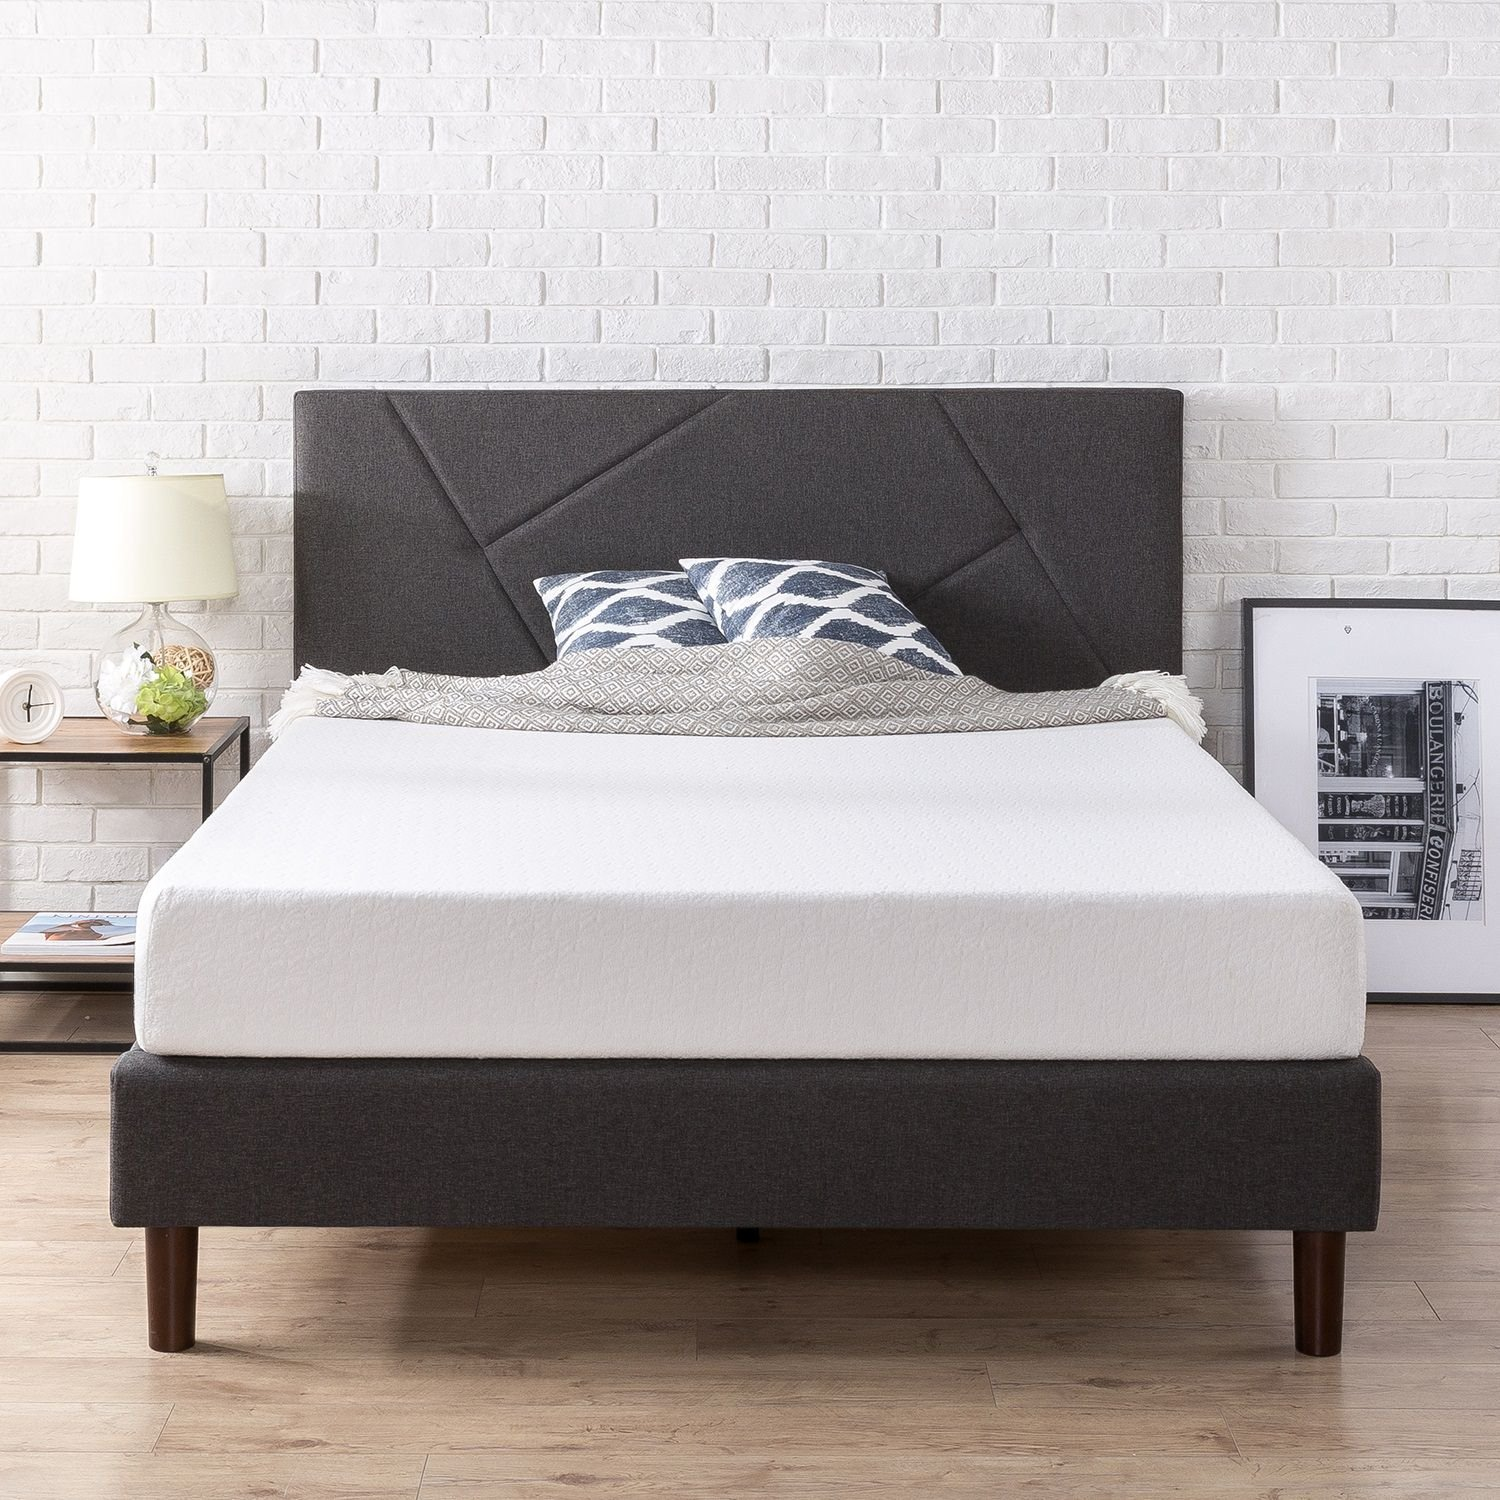 Best Sites To Buy Platform Beds From